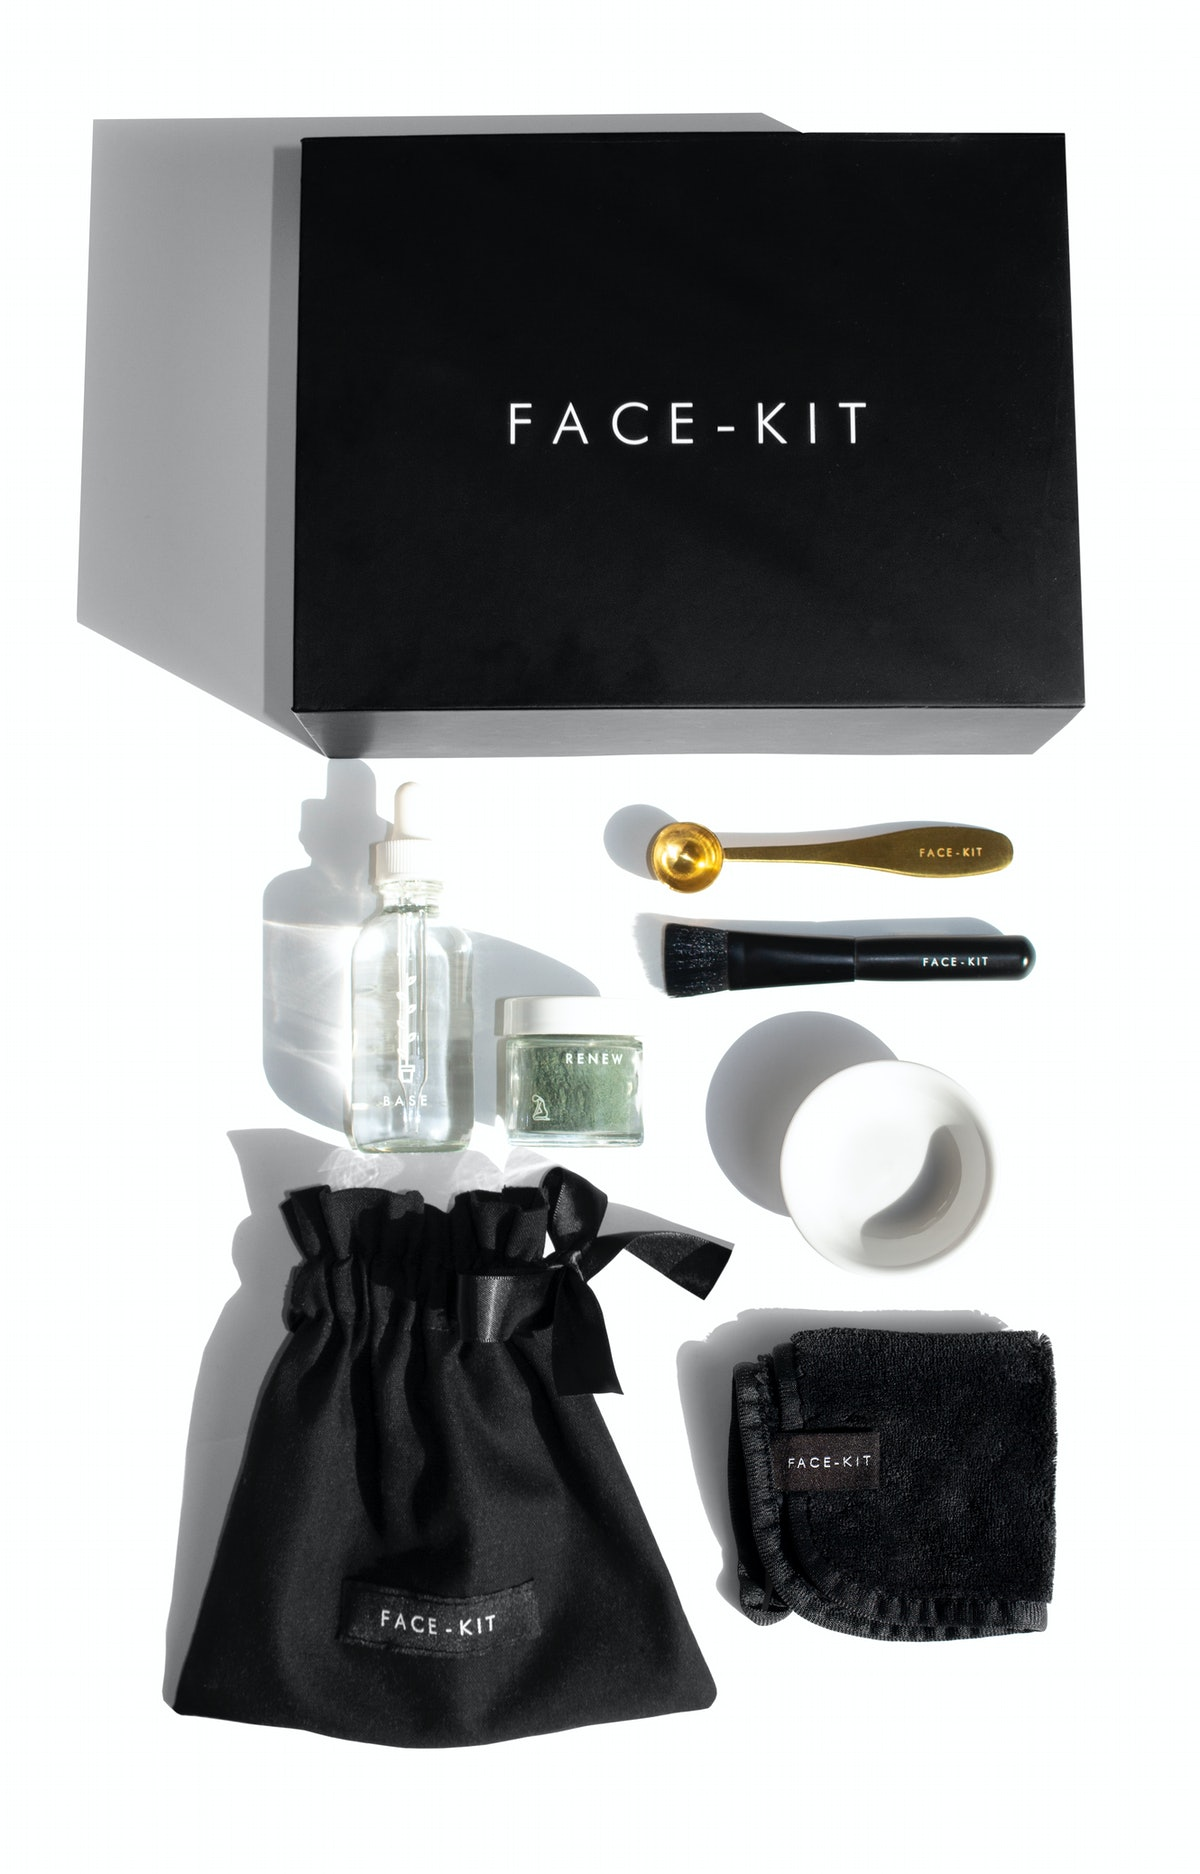 Face mask from new beauty brand Face-Kit.